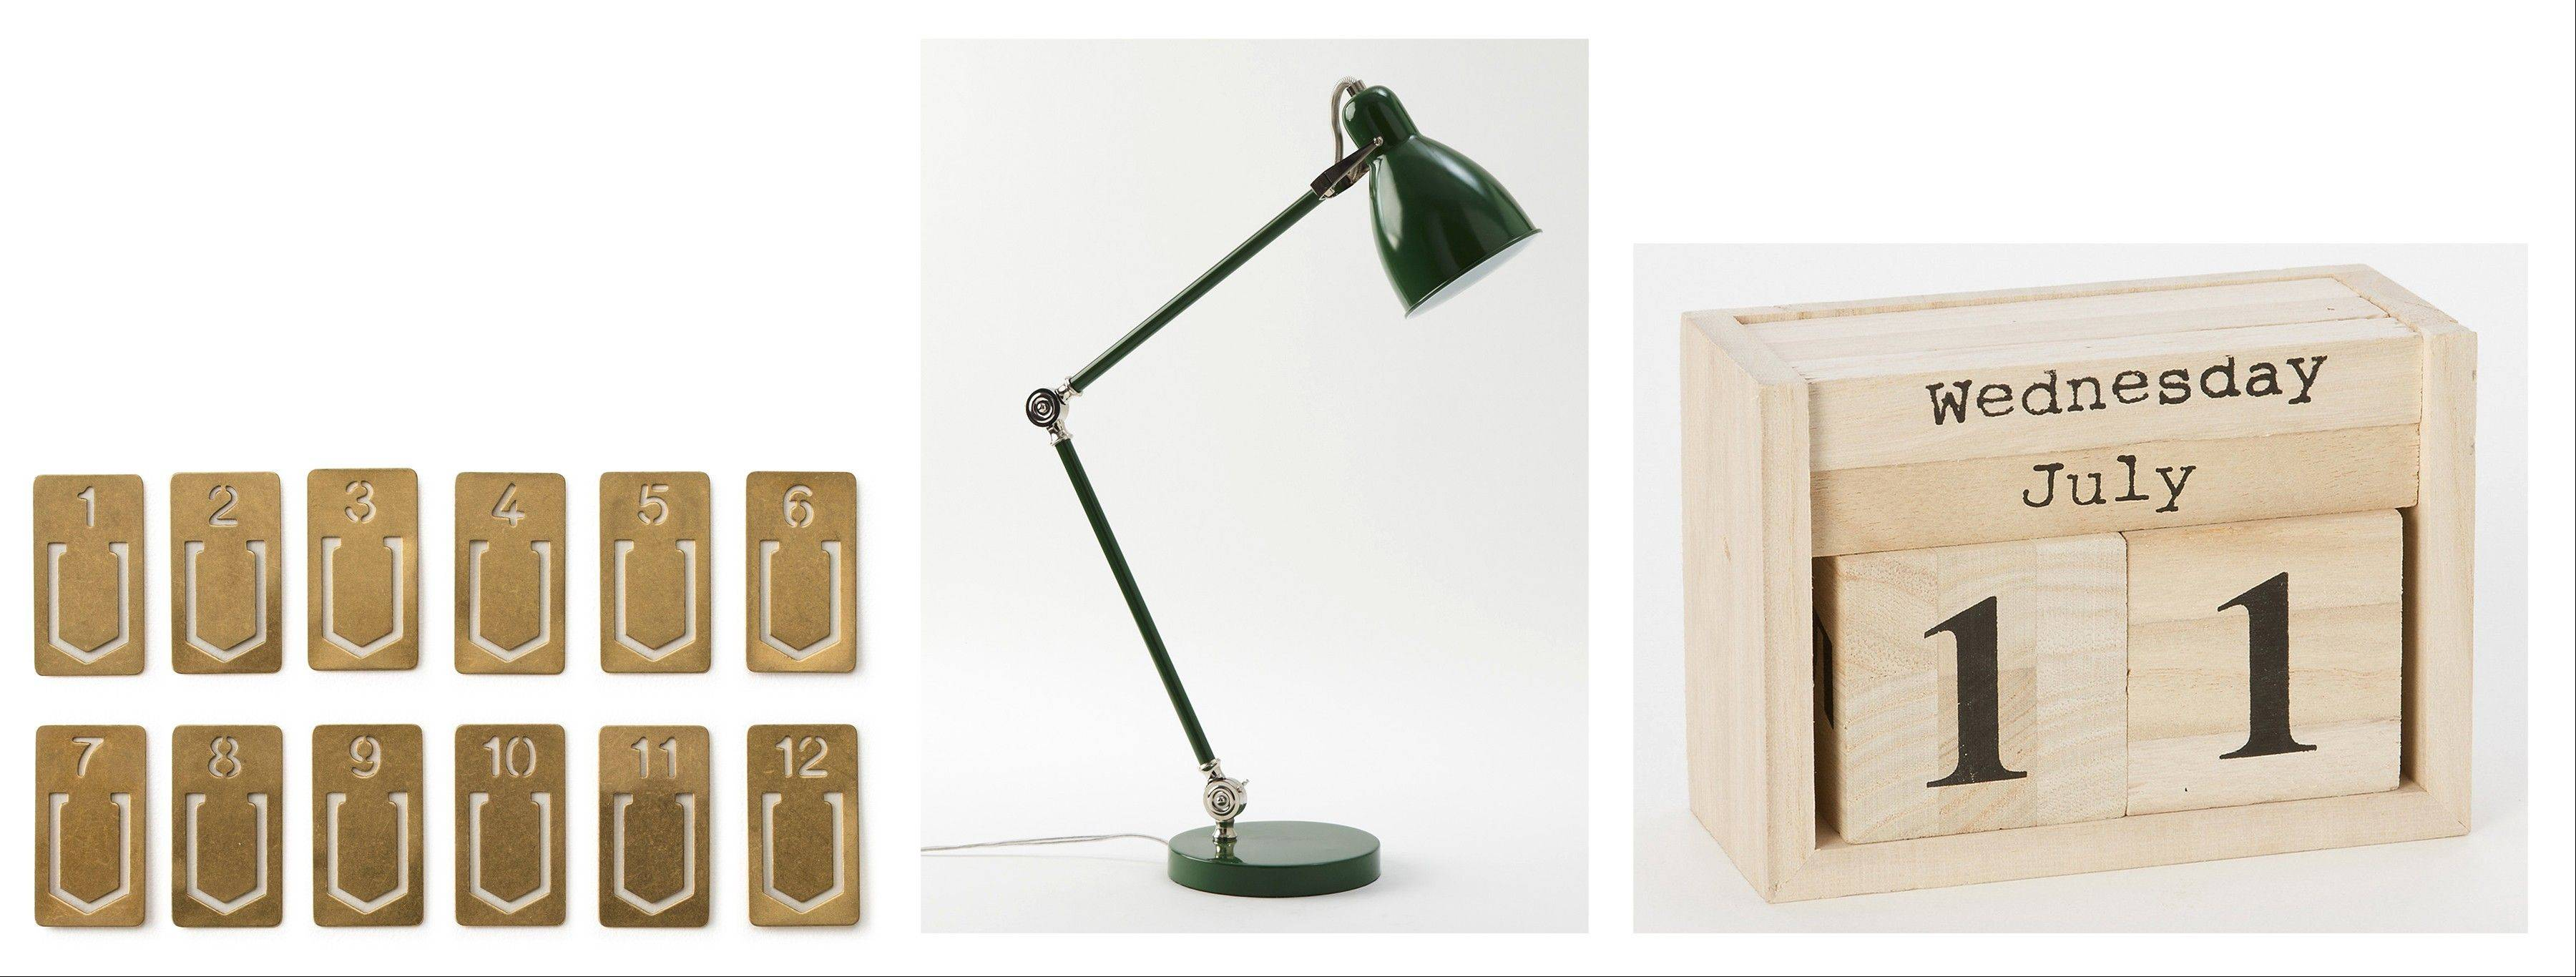 From left, brass-hued number clips can be used to label files and organize notes; Terrain's Woodlblock Calendar brings a bit of nature into the home office; West Elm's Industrial Task Table Lamp is a good choice for a desk light.